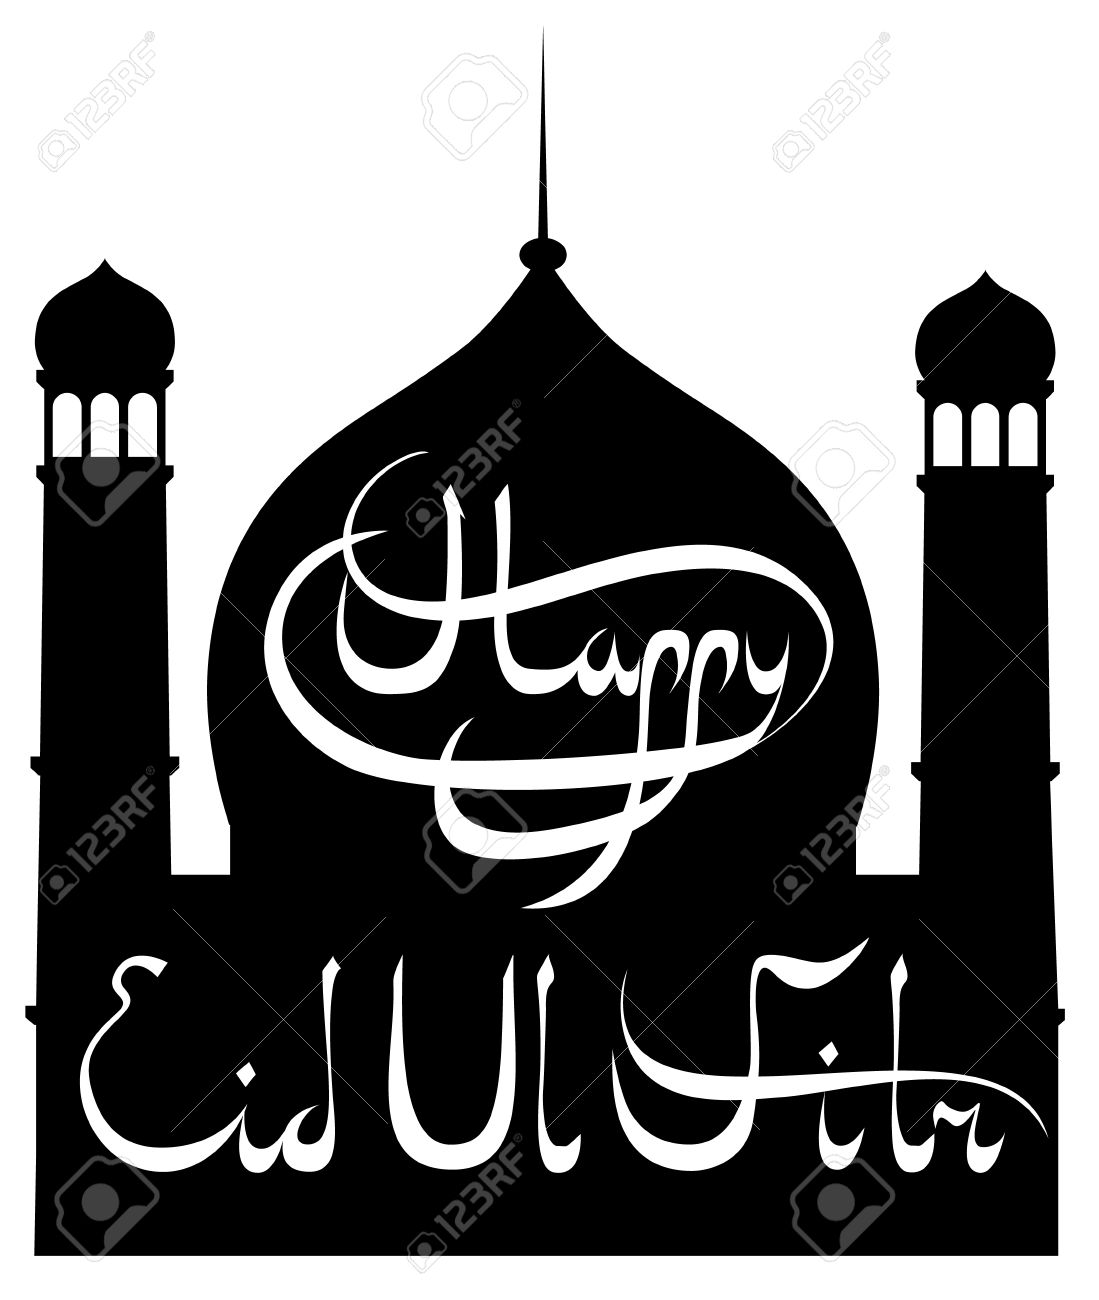 Islamic Clip Art With Mosque And Eid Ul Fitr Greetings Royalty.